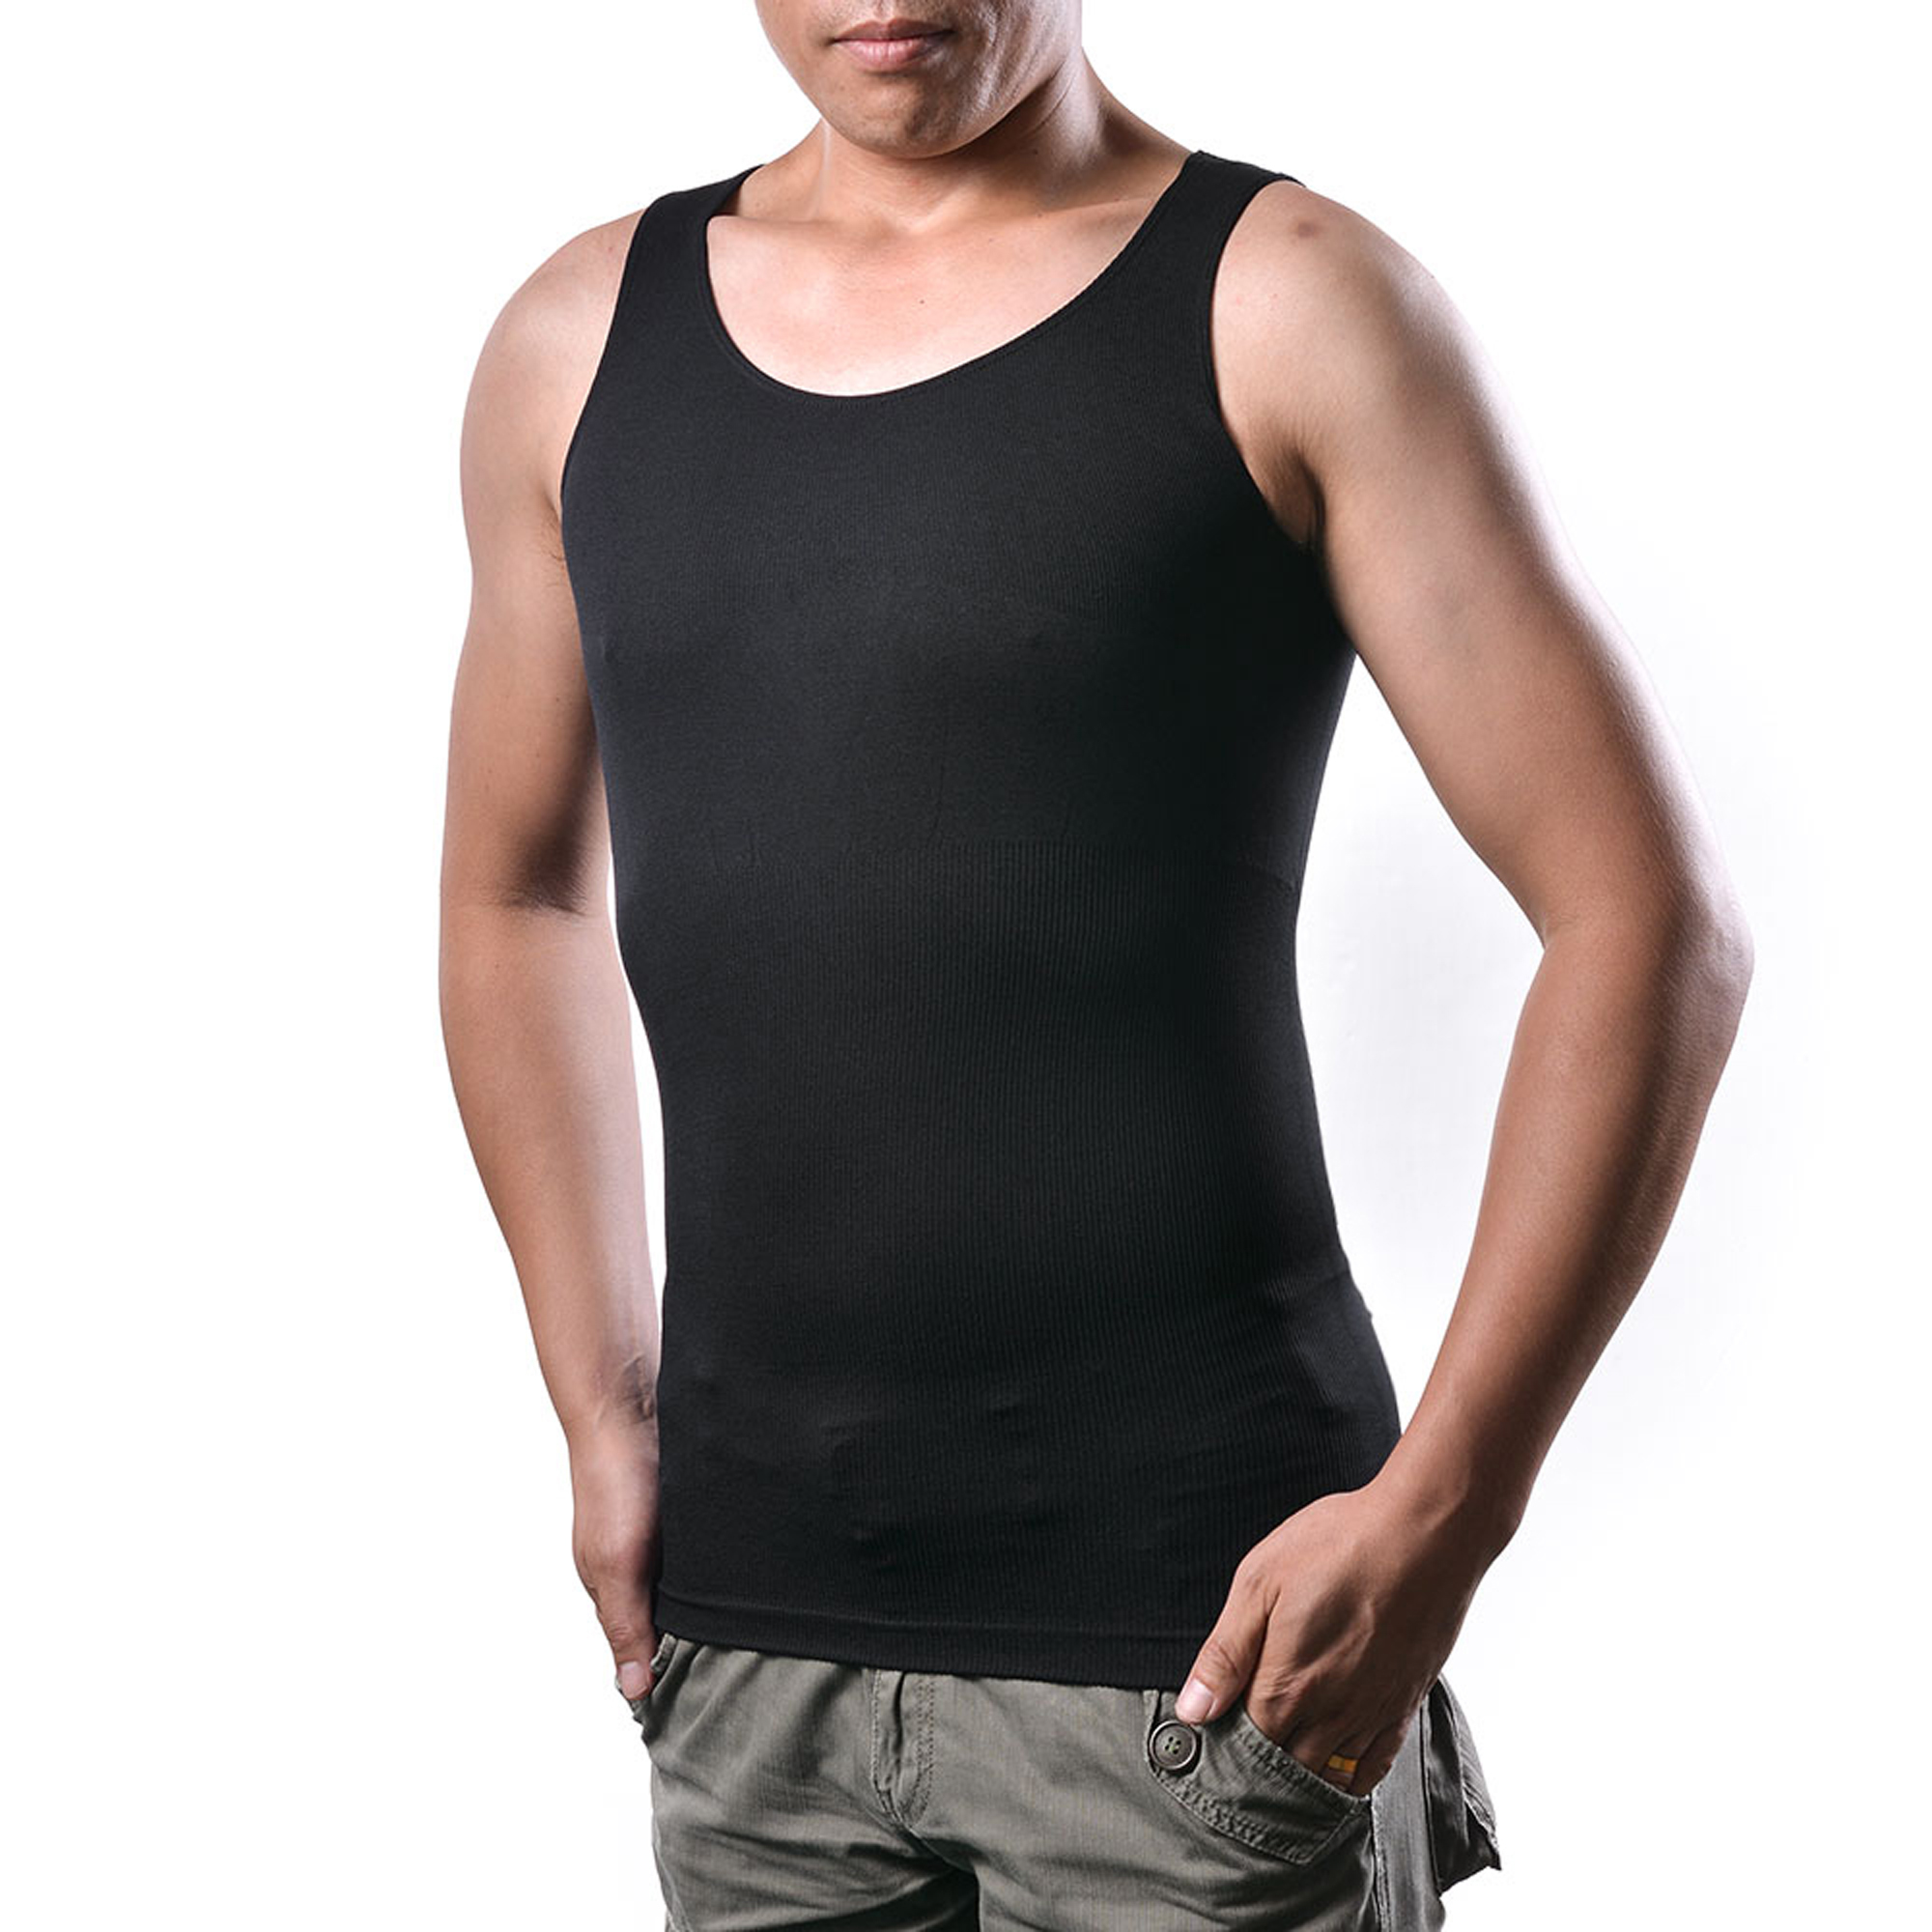 Men's Body Shaper For Men Slimming Vest Tummy Waist Lose Weight Compression Shirt Size: XL